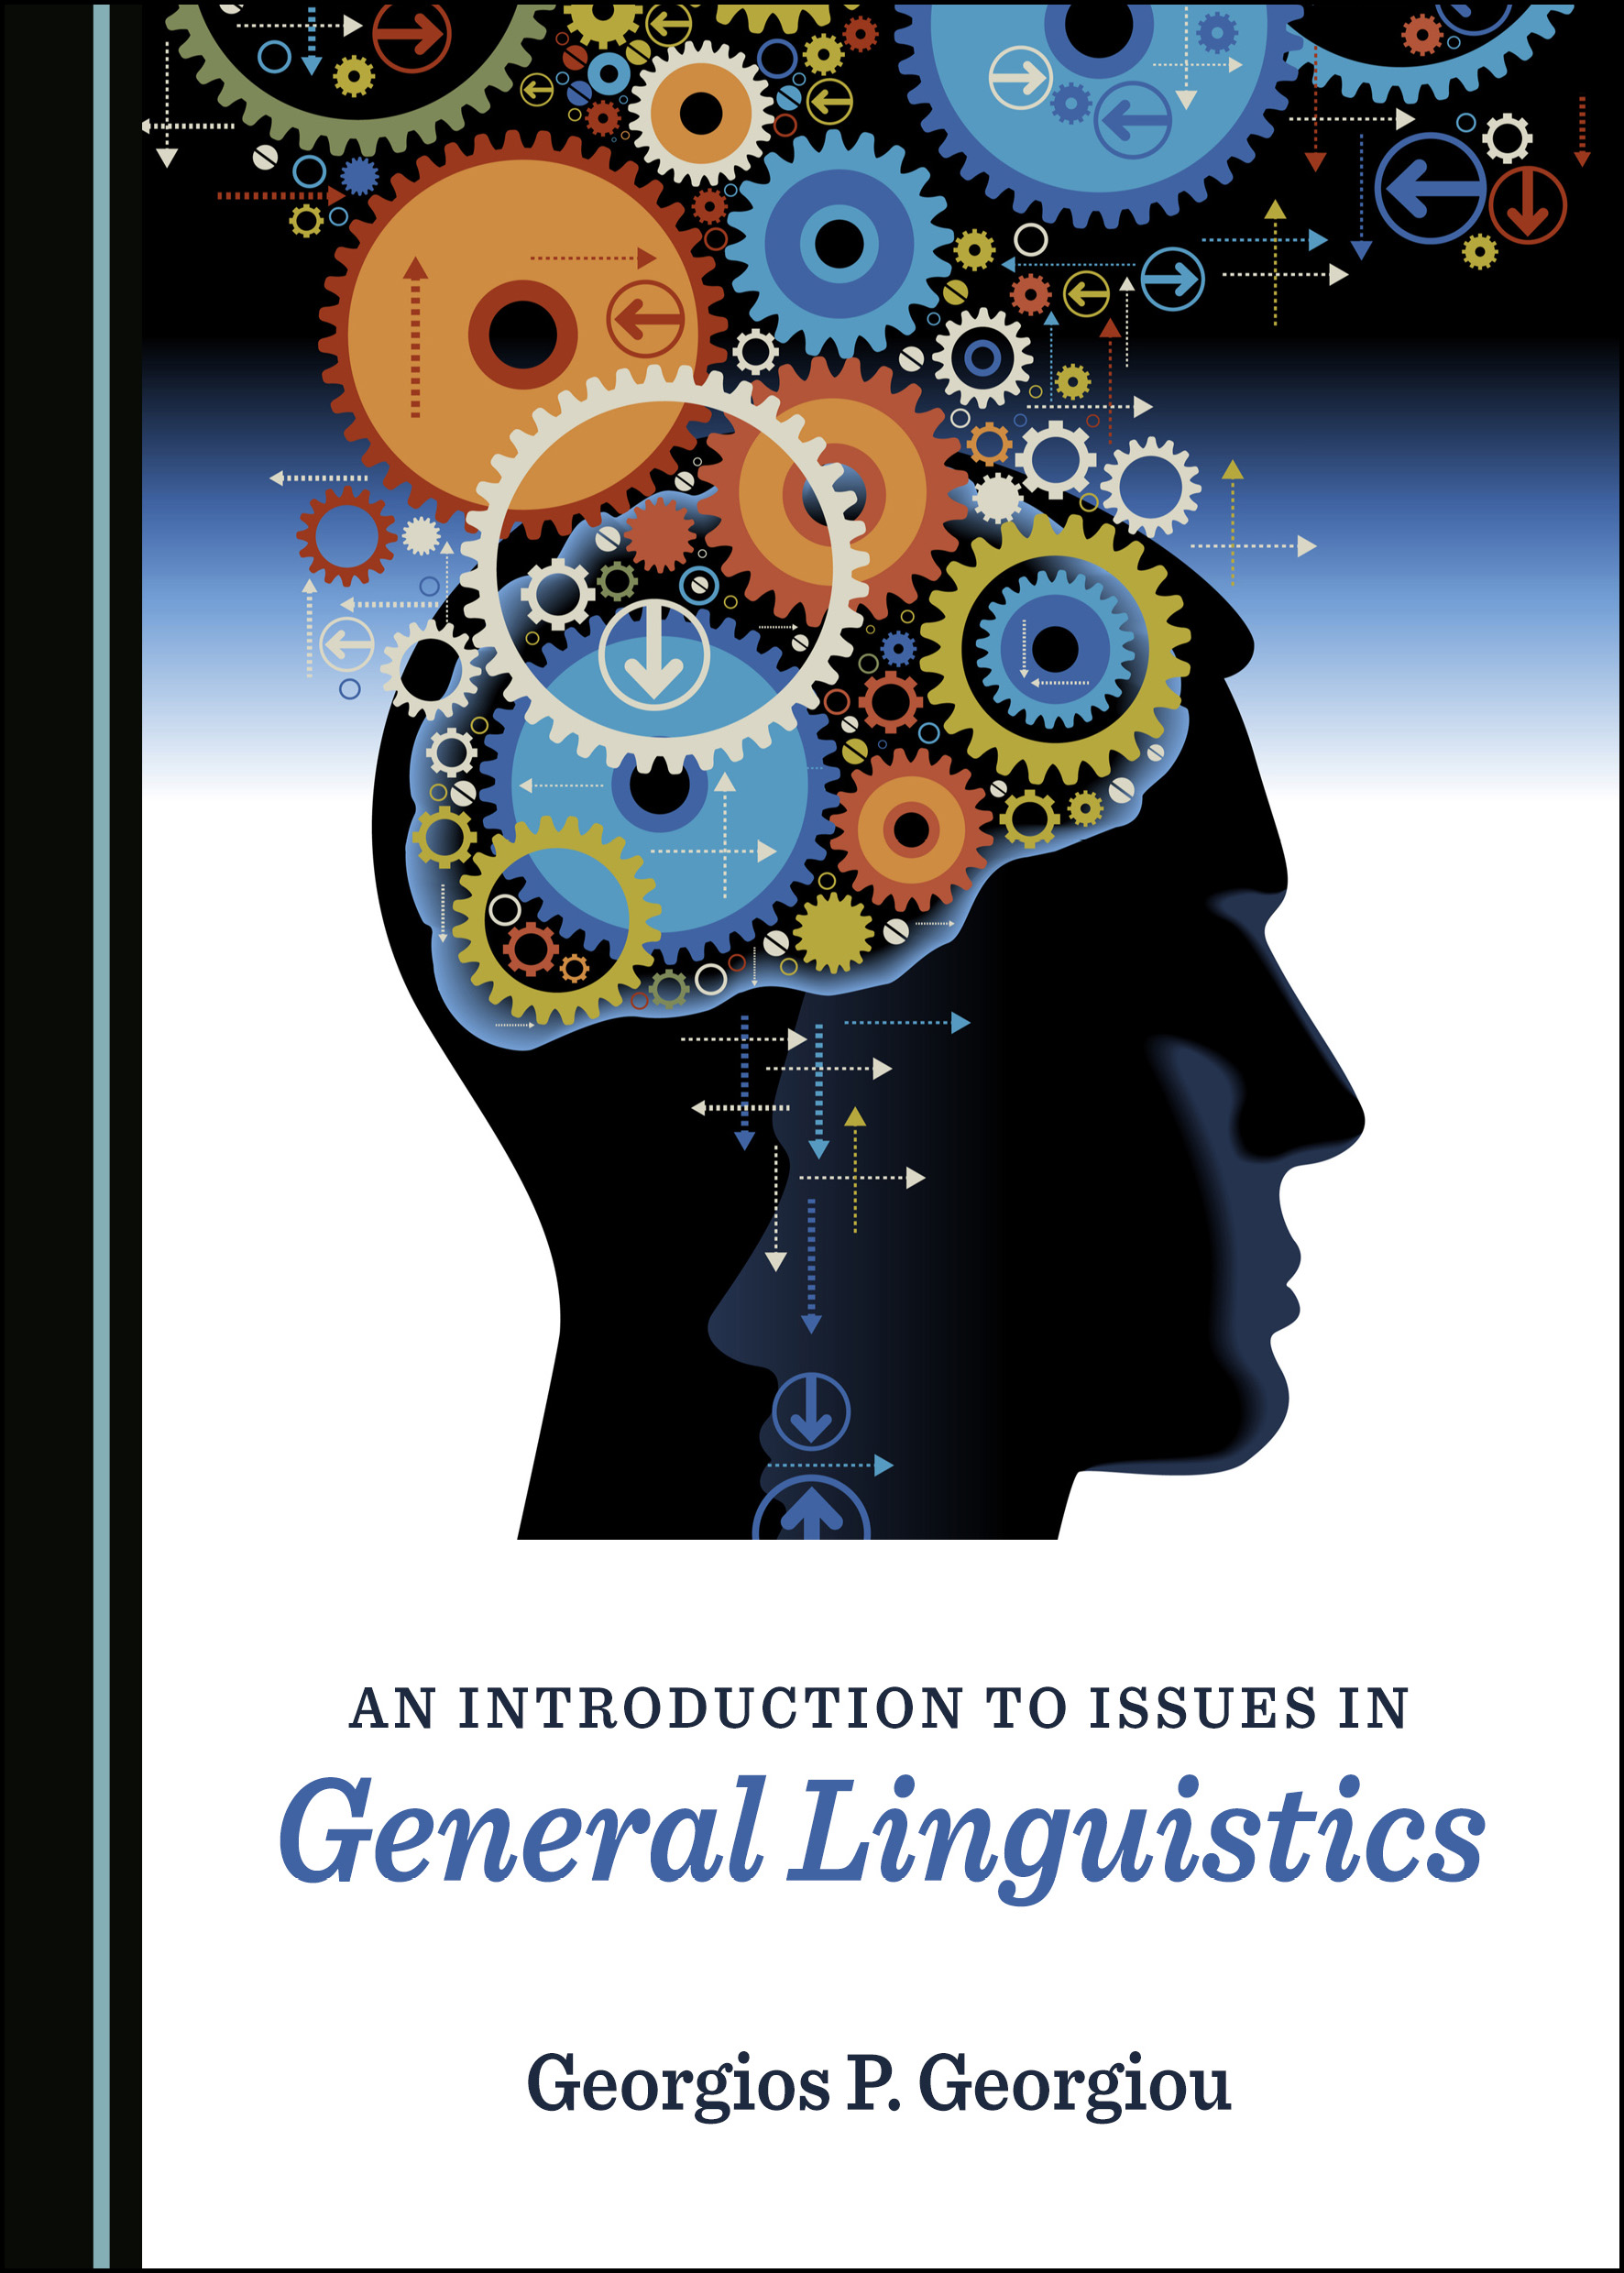 An Introduction to Issues in General Linguistics